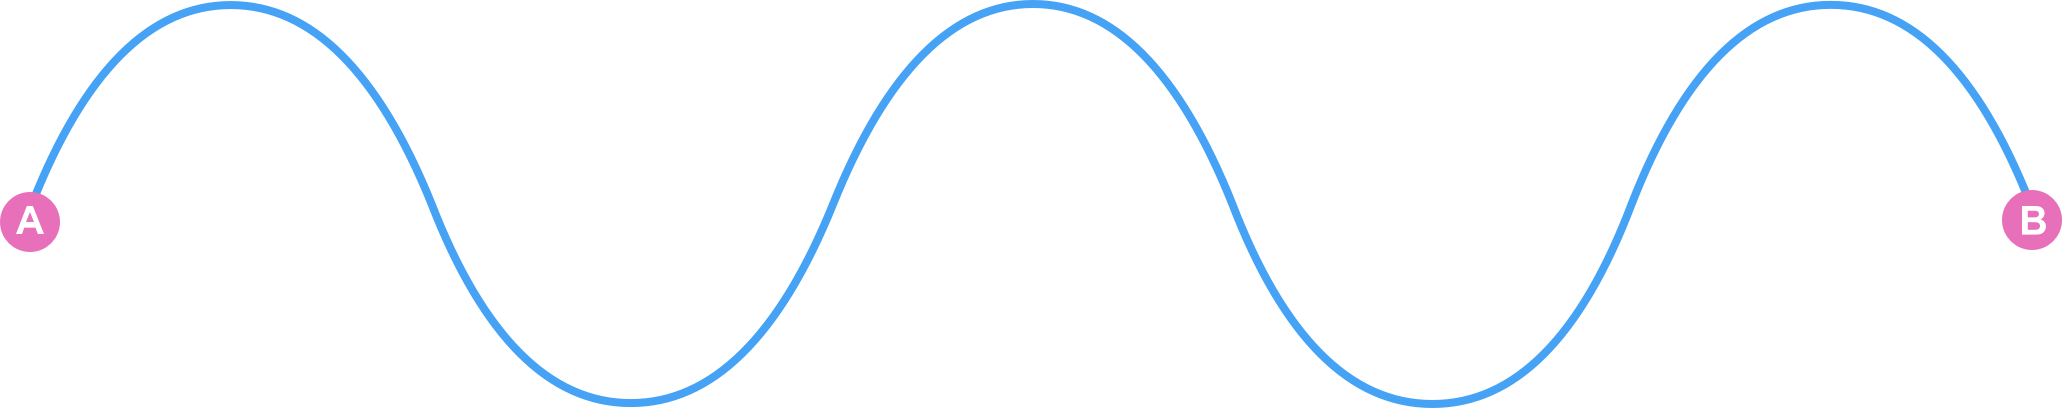 drawing curve tool